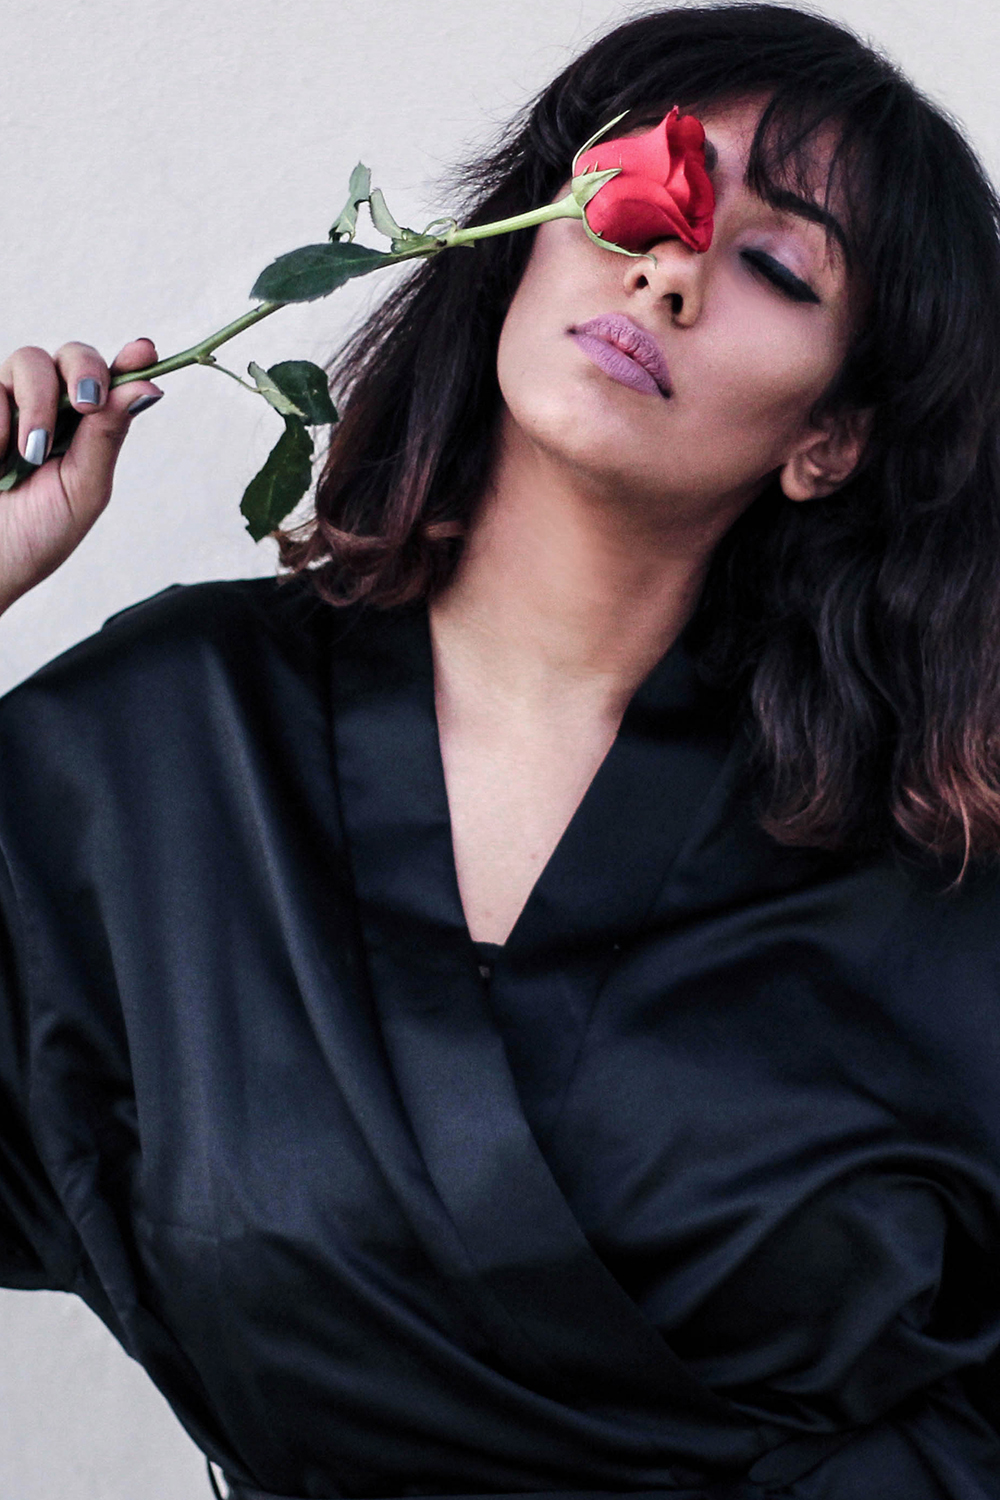 Silk Wrap ; Robe ; Black ; Nightwear ; Pretty Secrets ; Lace ; Lookbook ; Outfit ; fashion photography ; Morning Look ; ootd ; Parisian ; red ; rose ; French ; Winged Liner ; ; Editorial ; Naznin ; Naznin Suhaer ; dusky; model ; indian blogger ; hyderabad fashion bloggers ; hyderabad bloggers ; hyderabad fashion blogger ; I Dress for the Applause ;